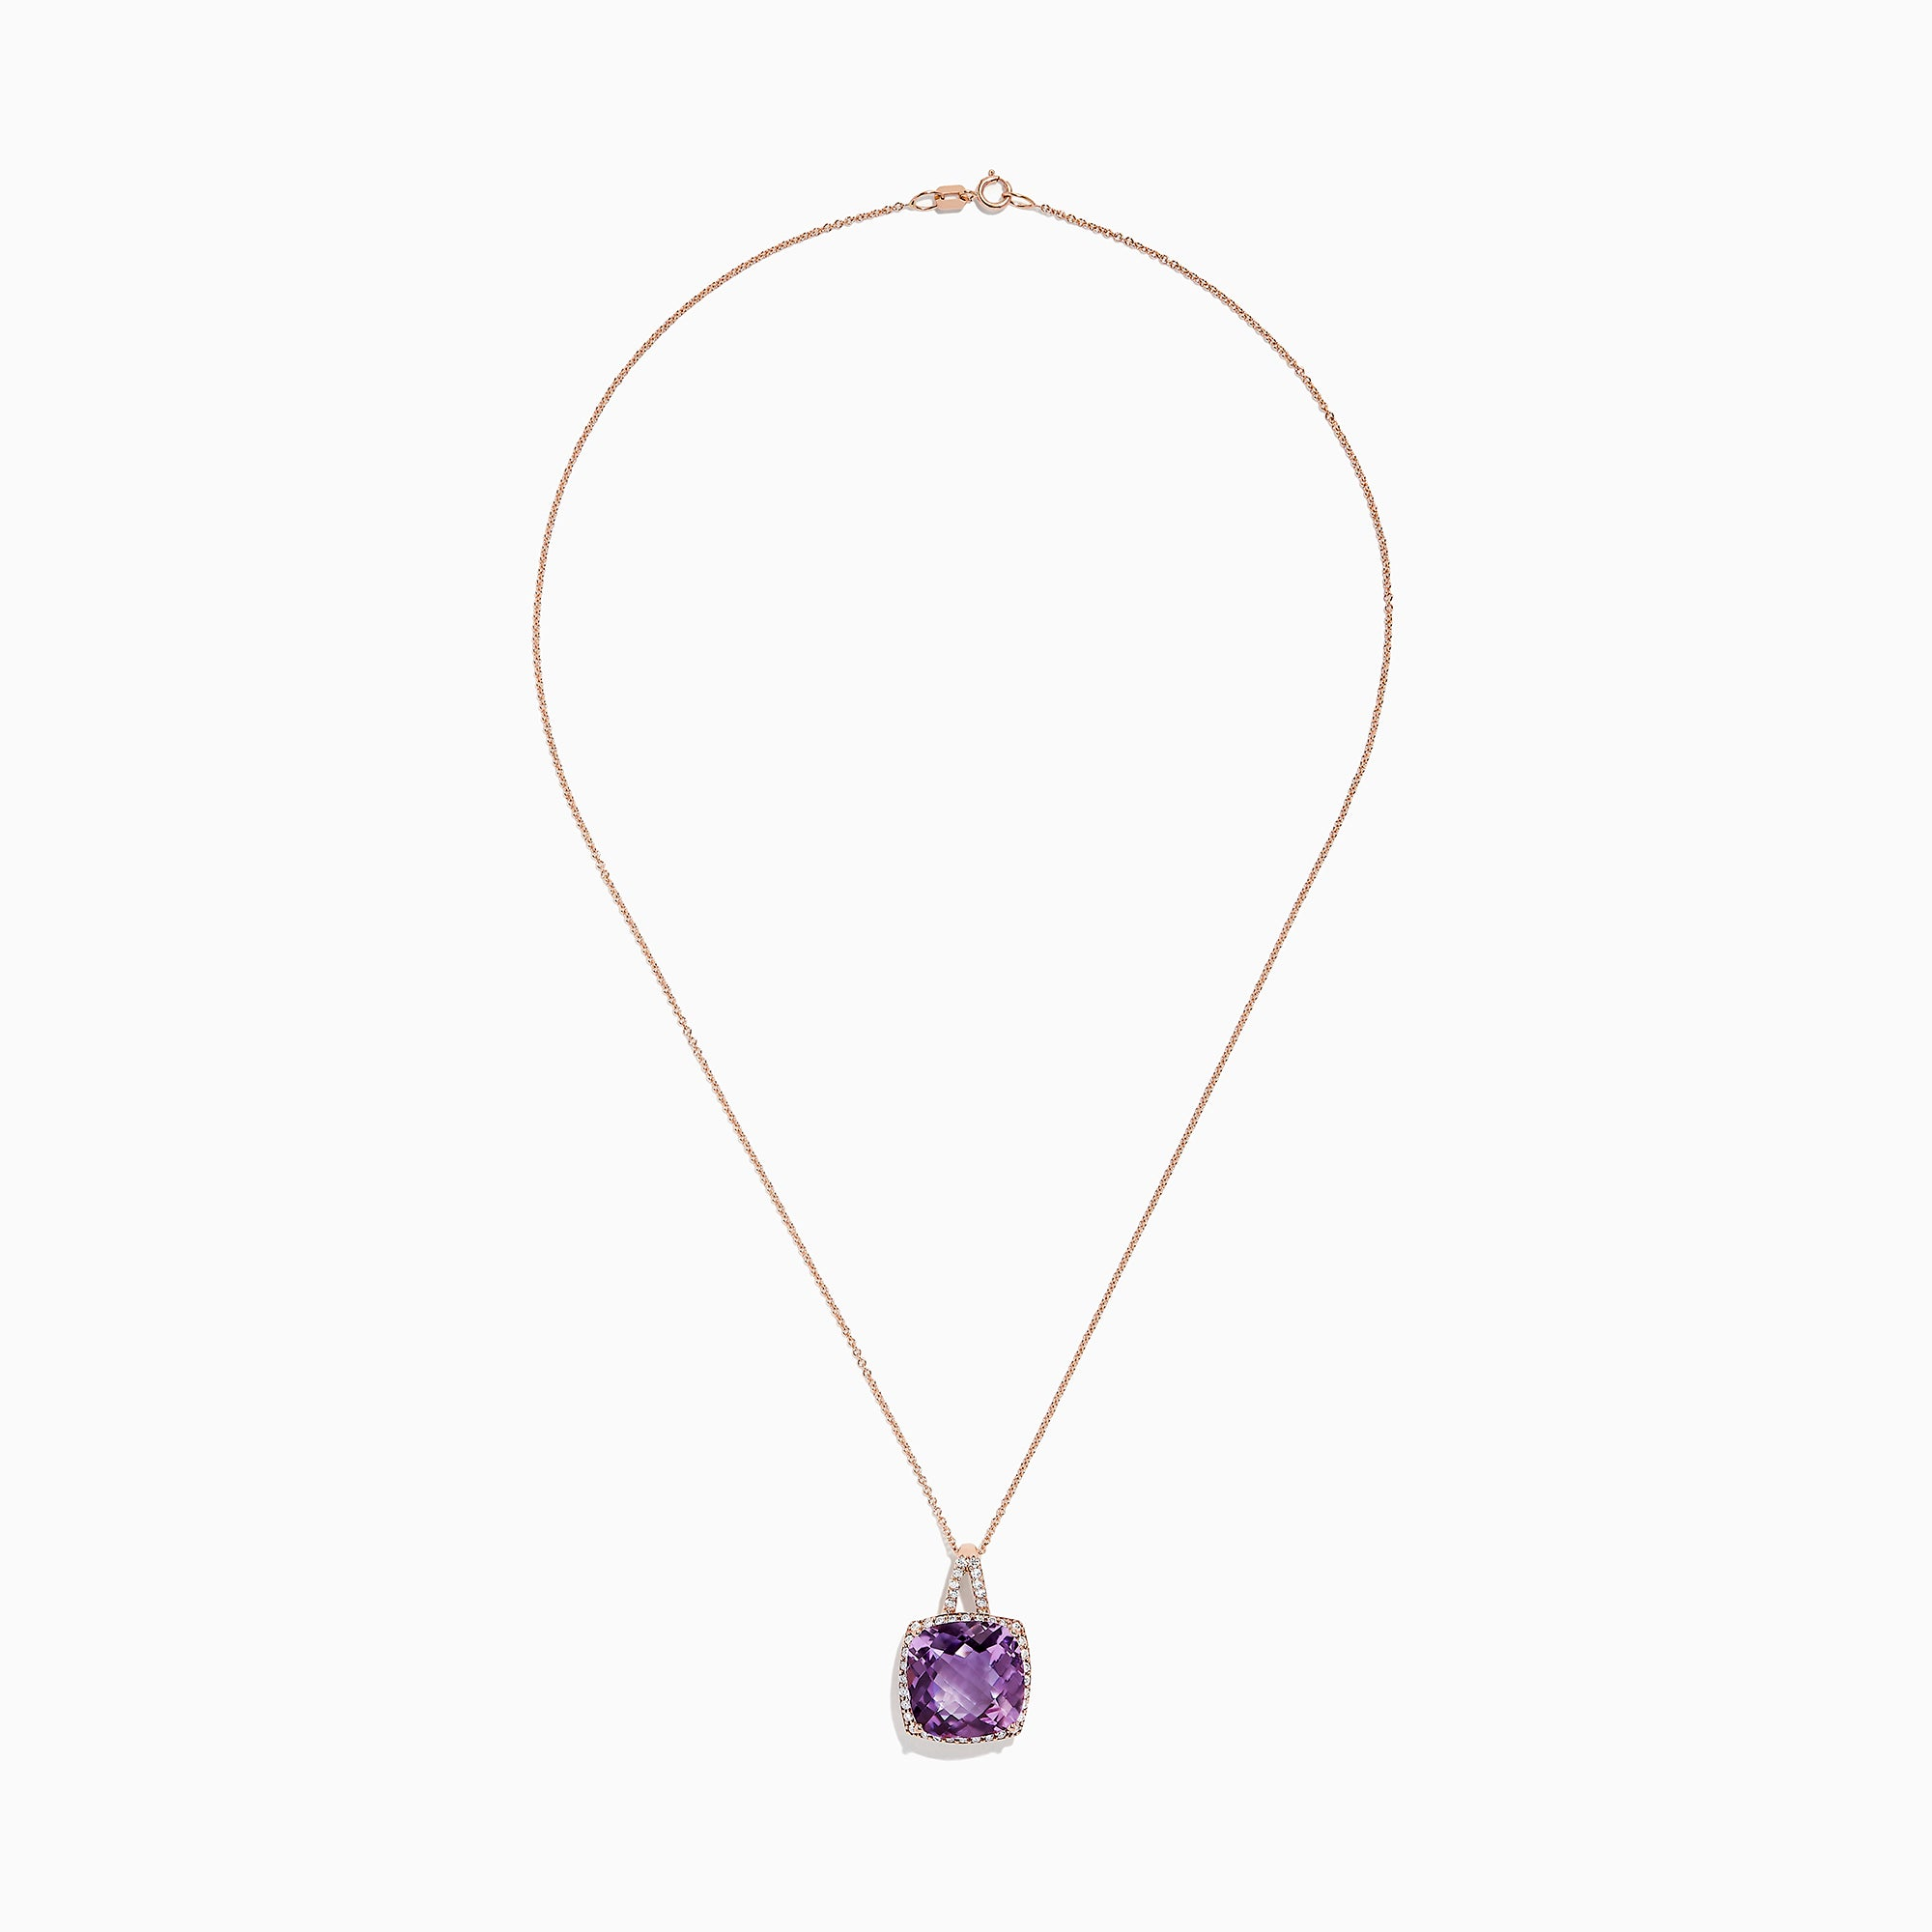 Effy 14K Rose Gold Amethyst and Diamond Pendant, 9.84 TCW